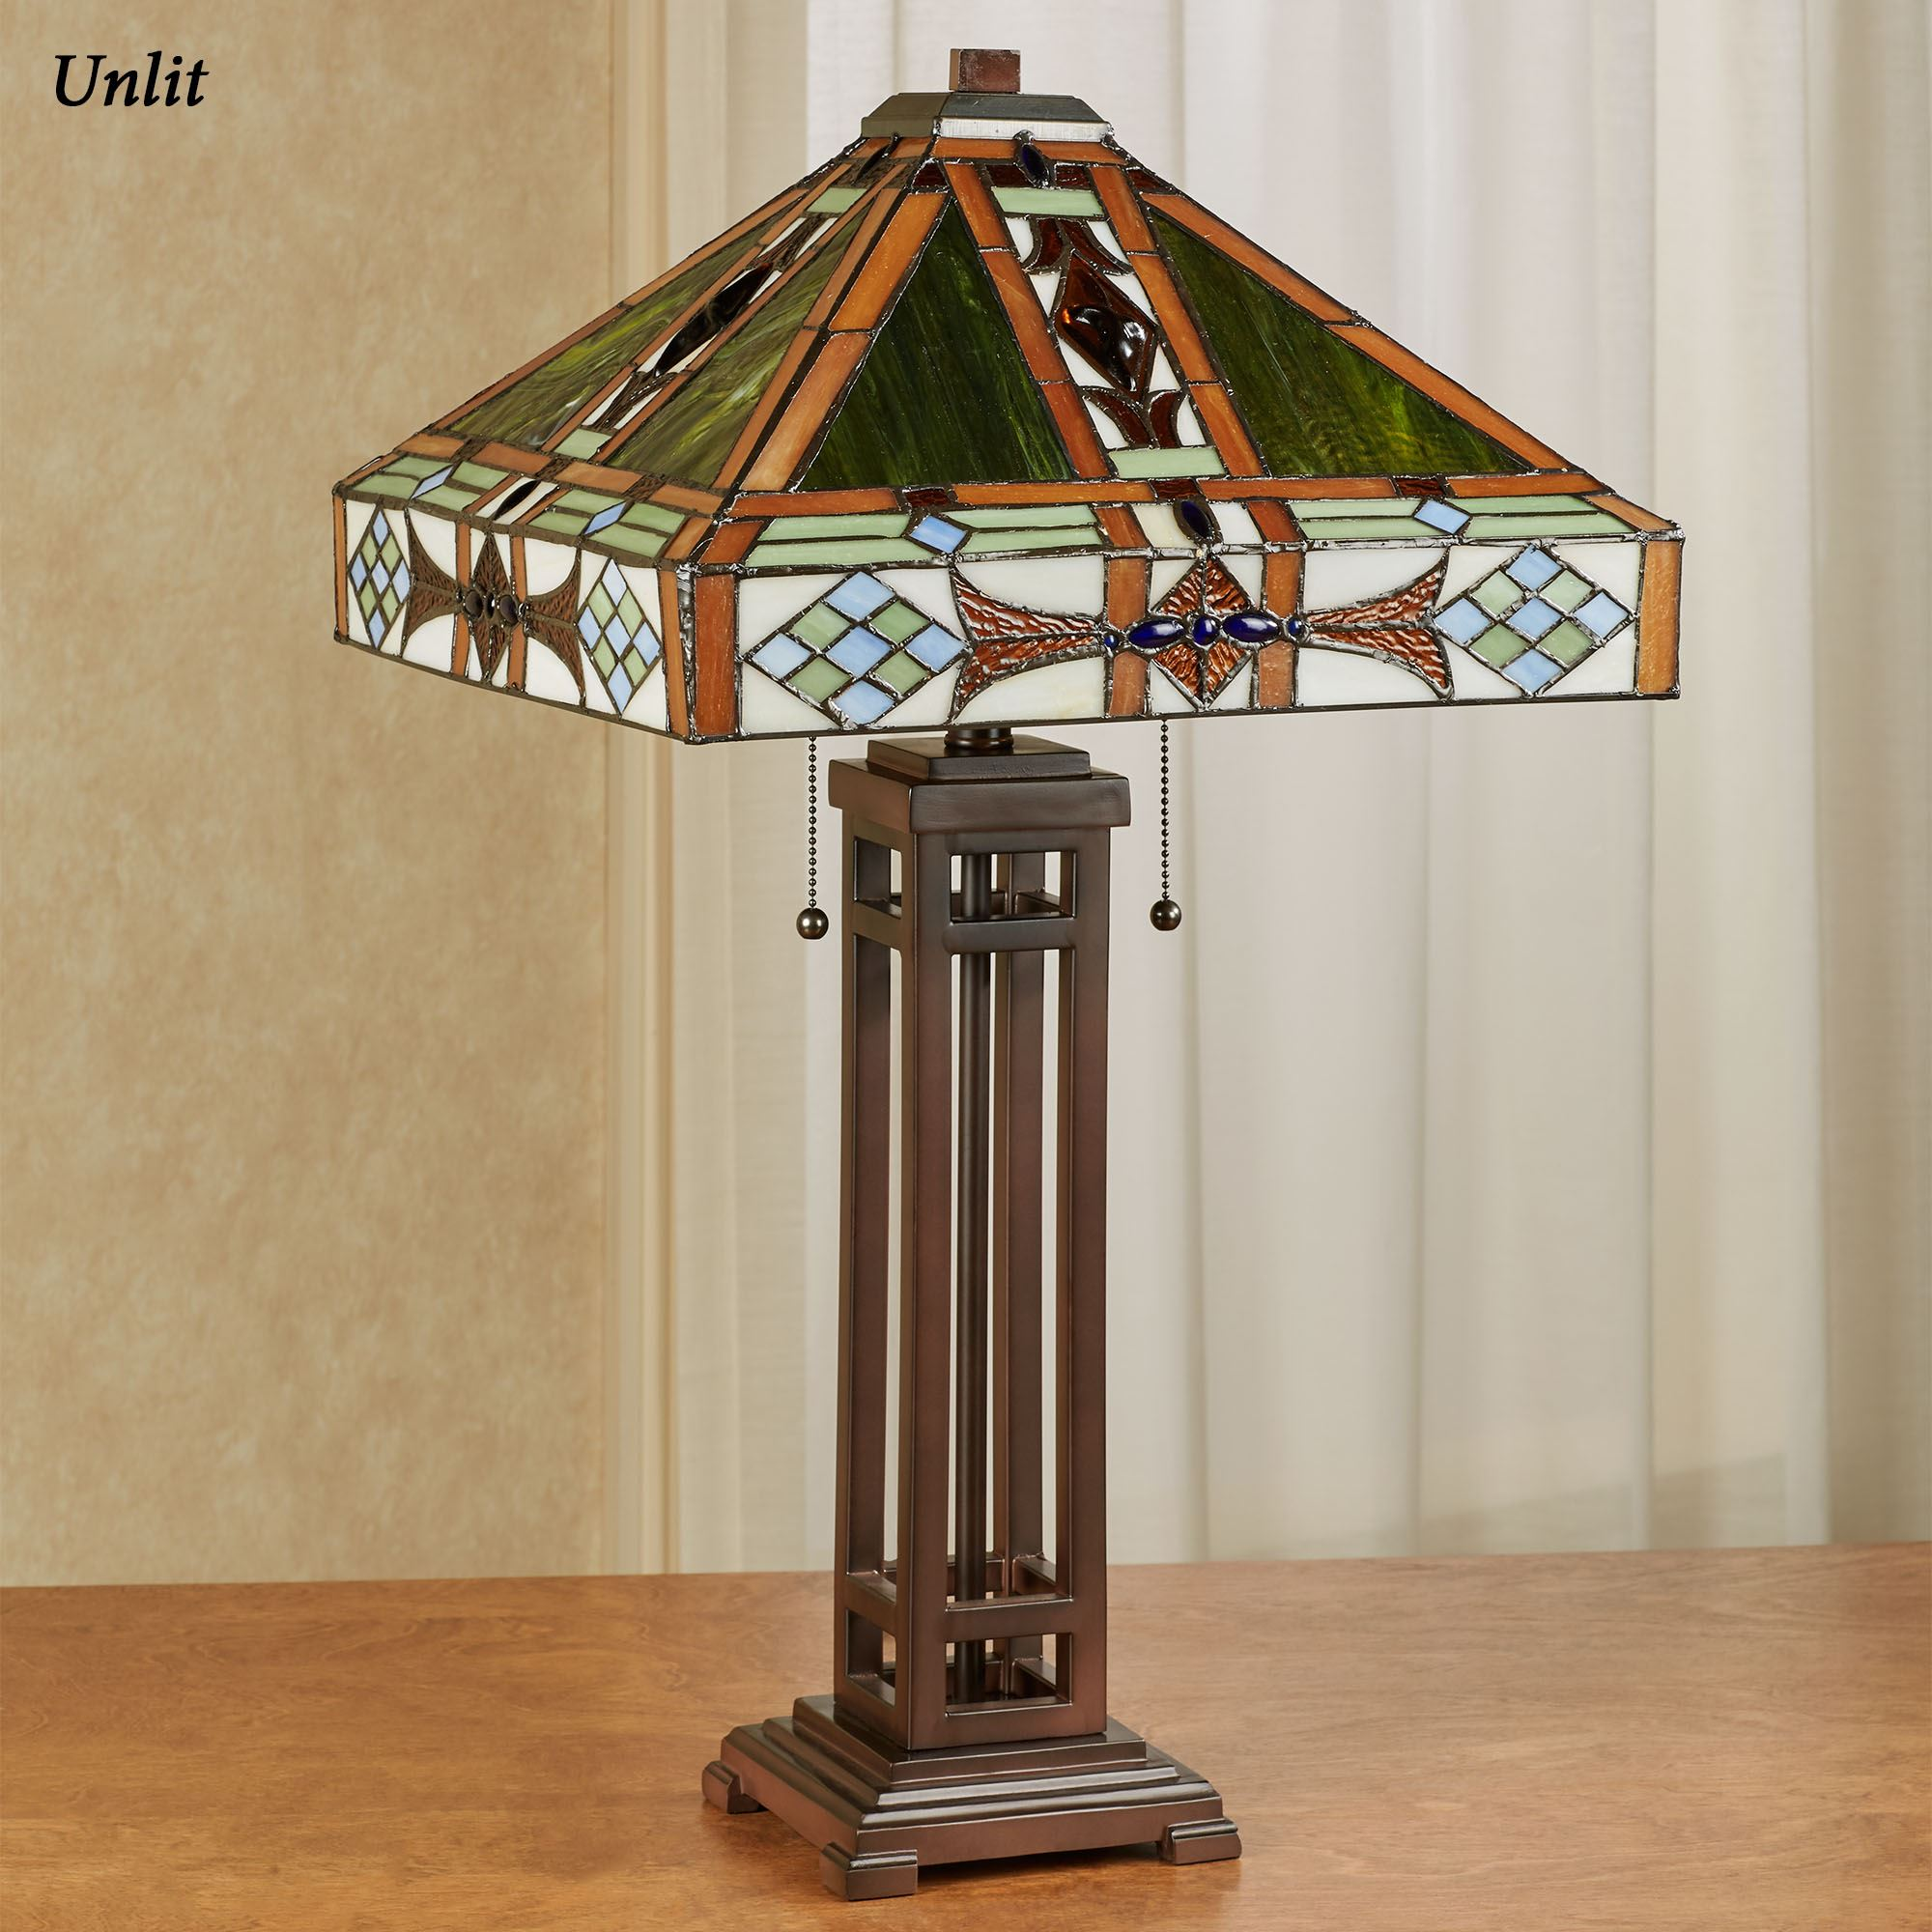 Your Favorite Team Plate Rolled in on The lamp Base ChCu JS Sports Table Lamp with Shade